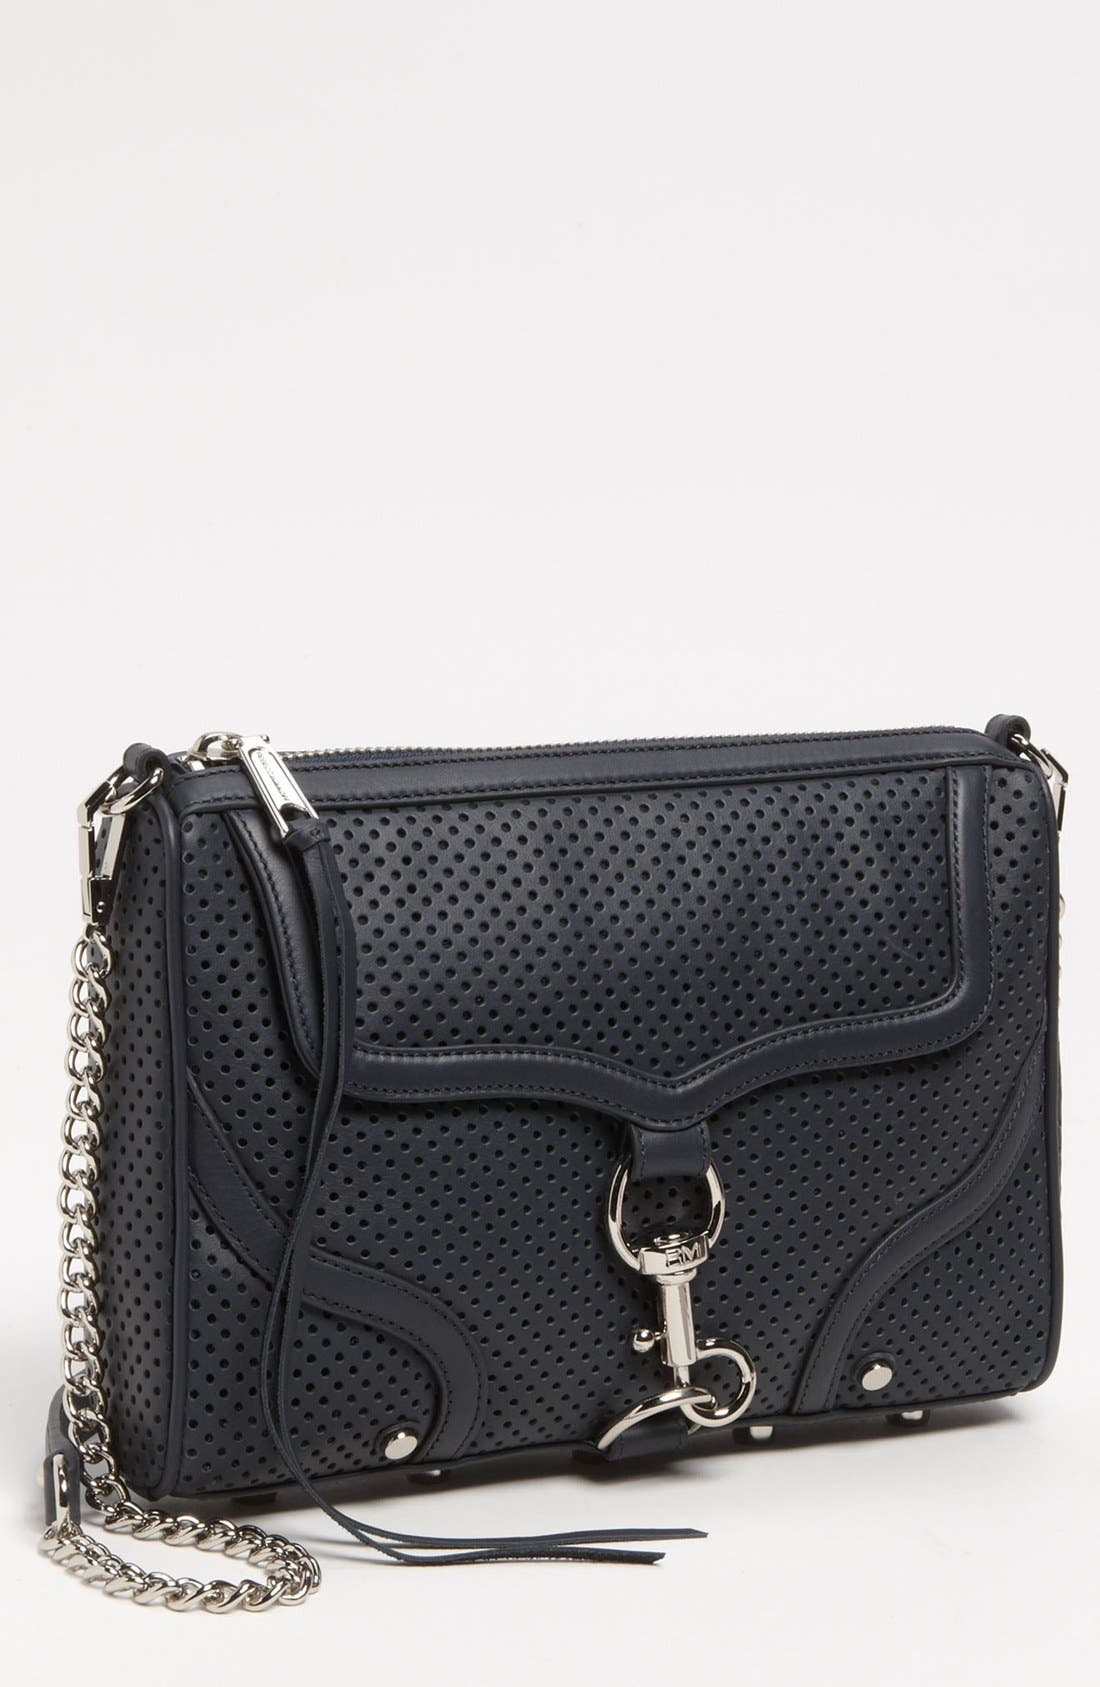 Alternate Image 1 Selected - Rebecca Minkoff 'MAC - Bombe' Leather Crossbody Clutch